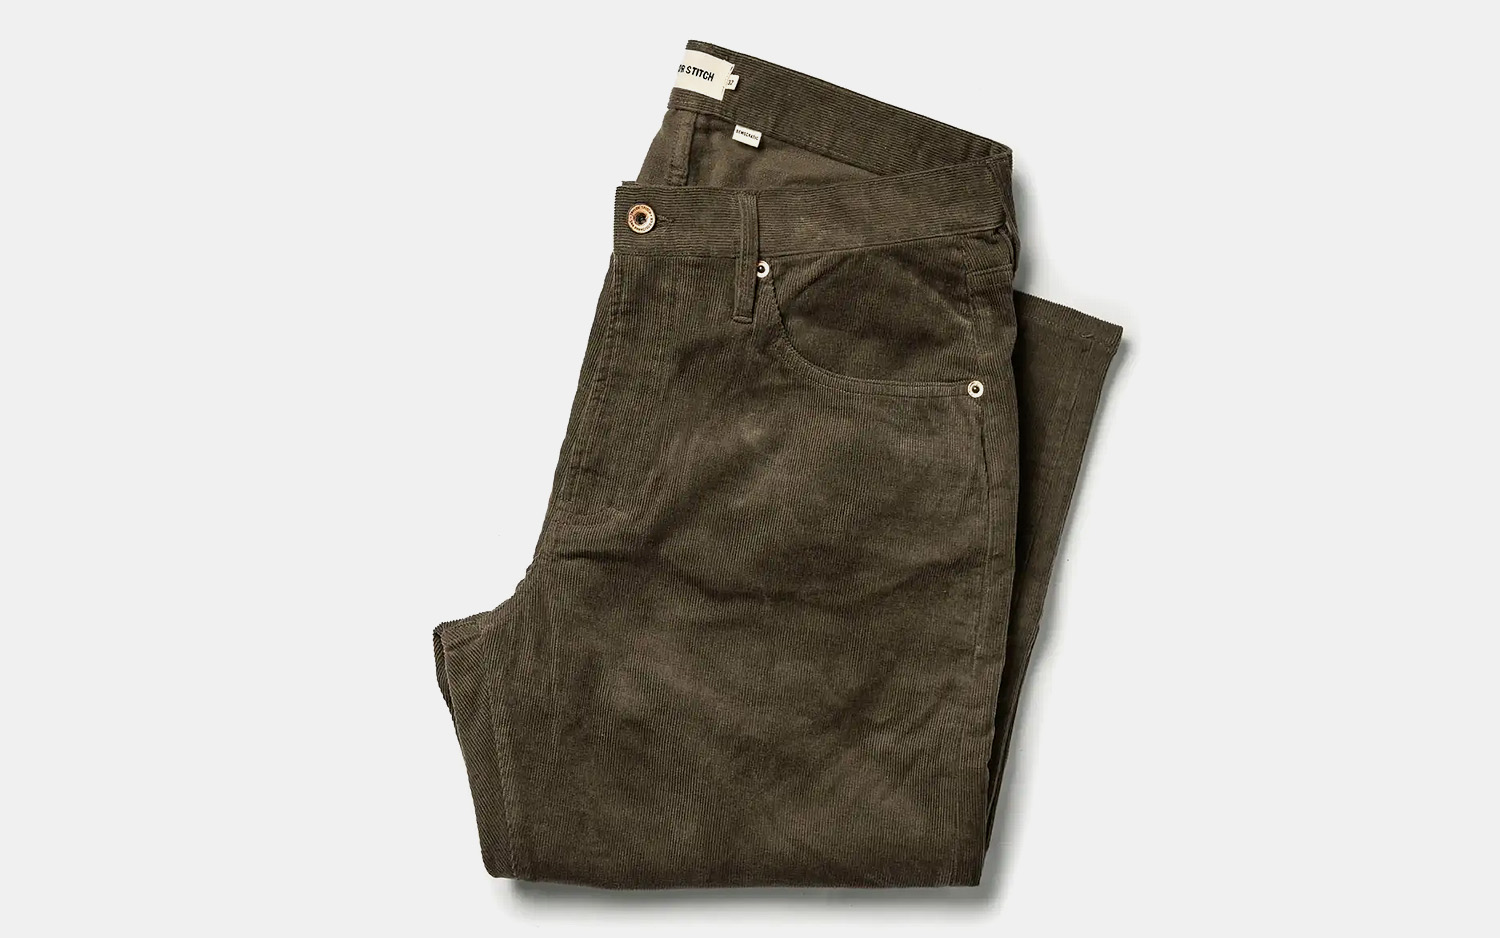 Taylor Stitch All Day Pants